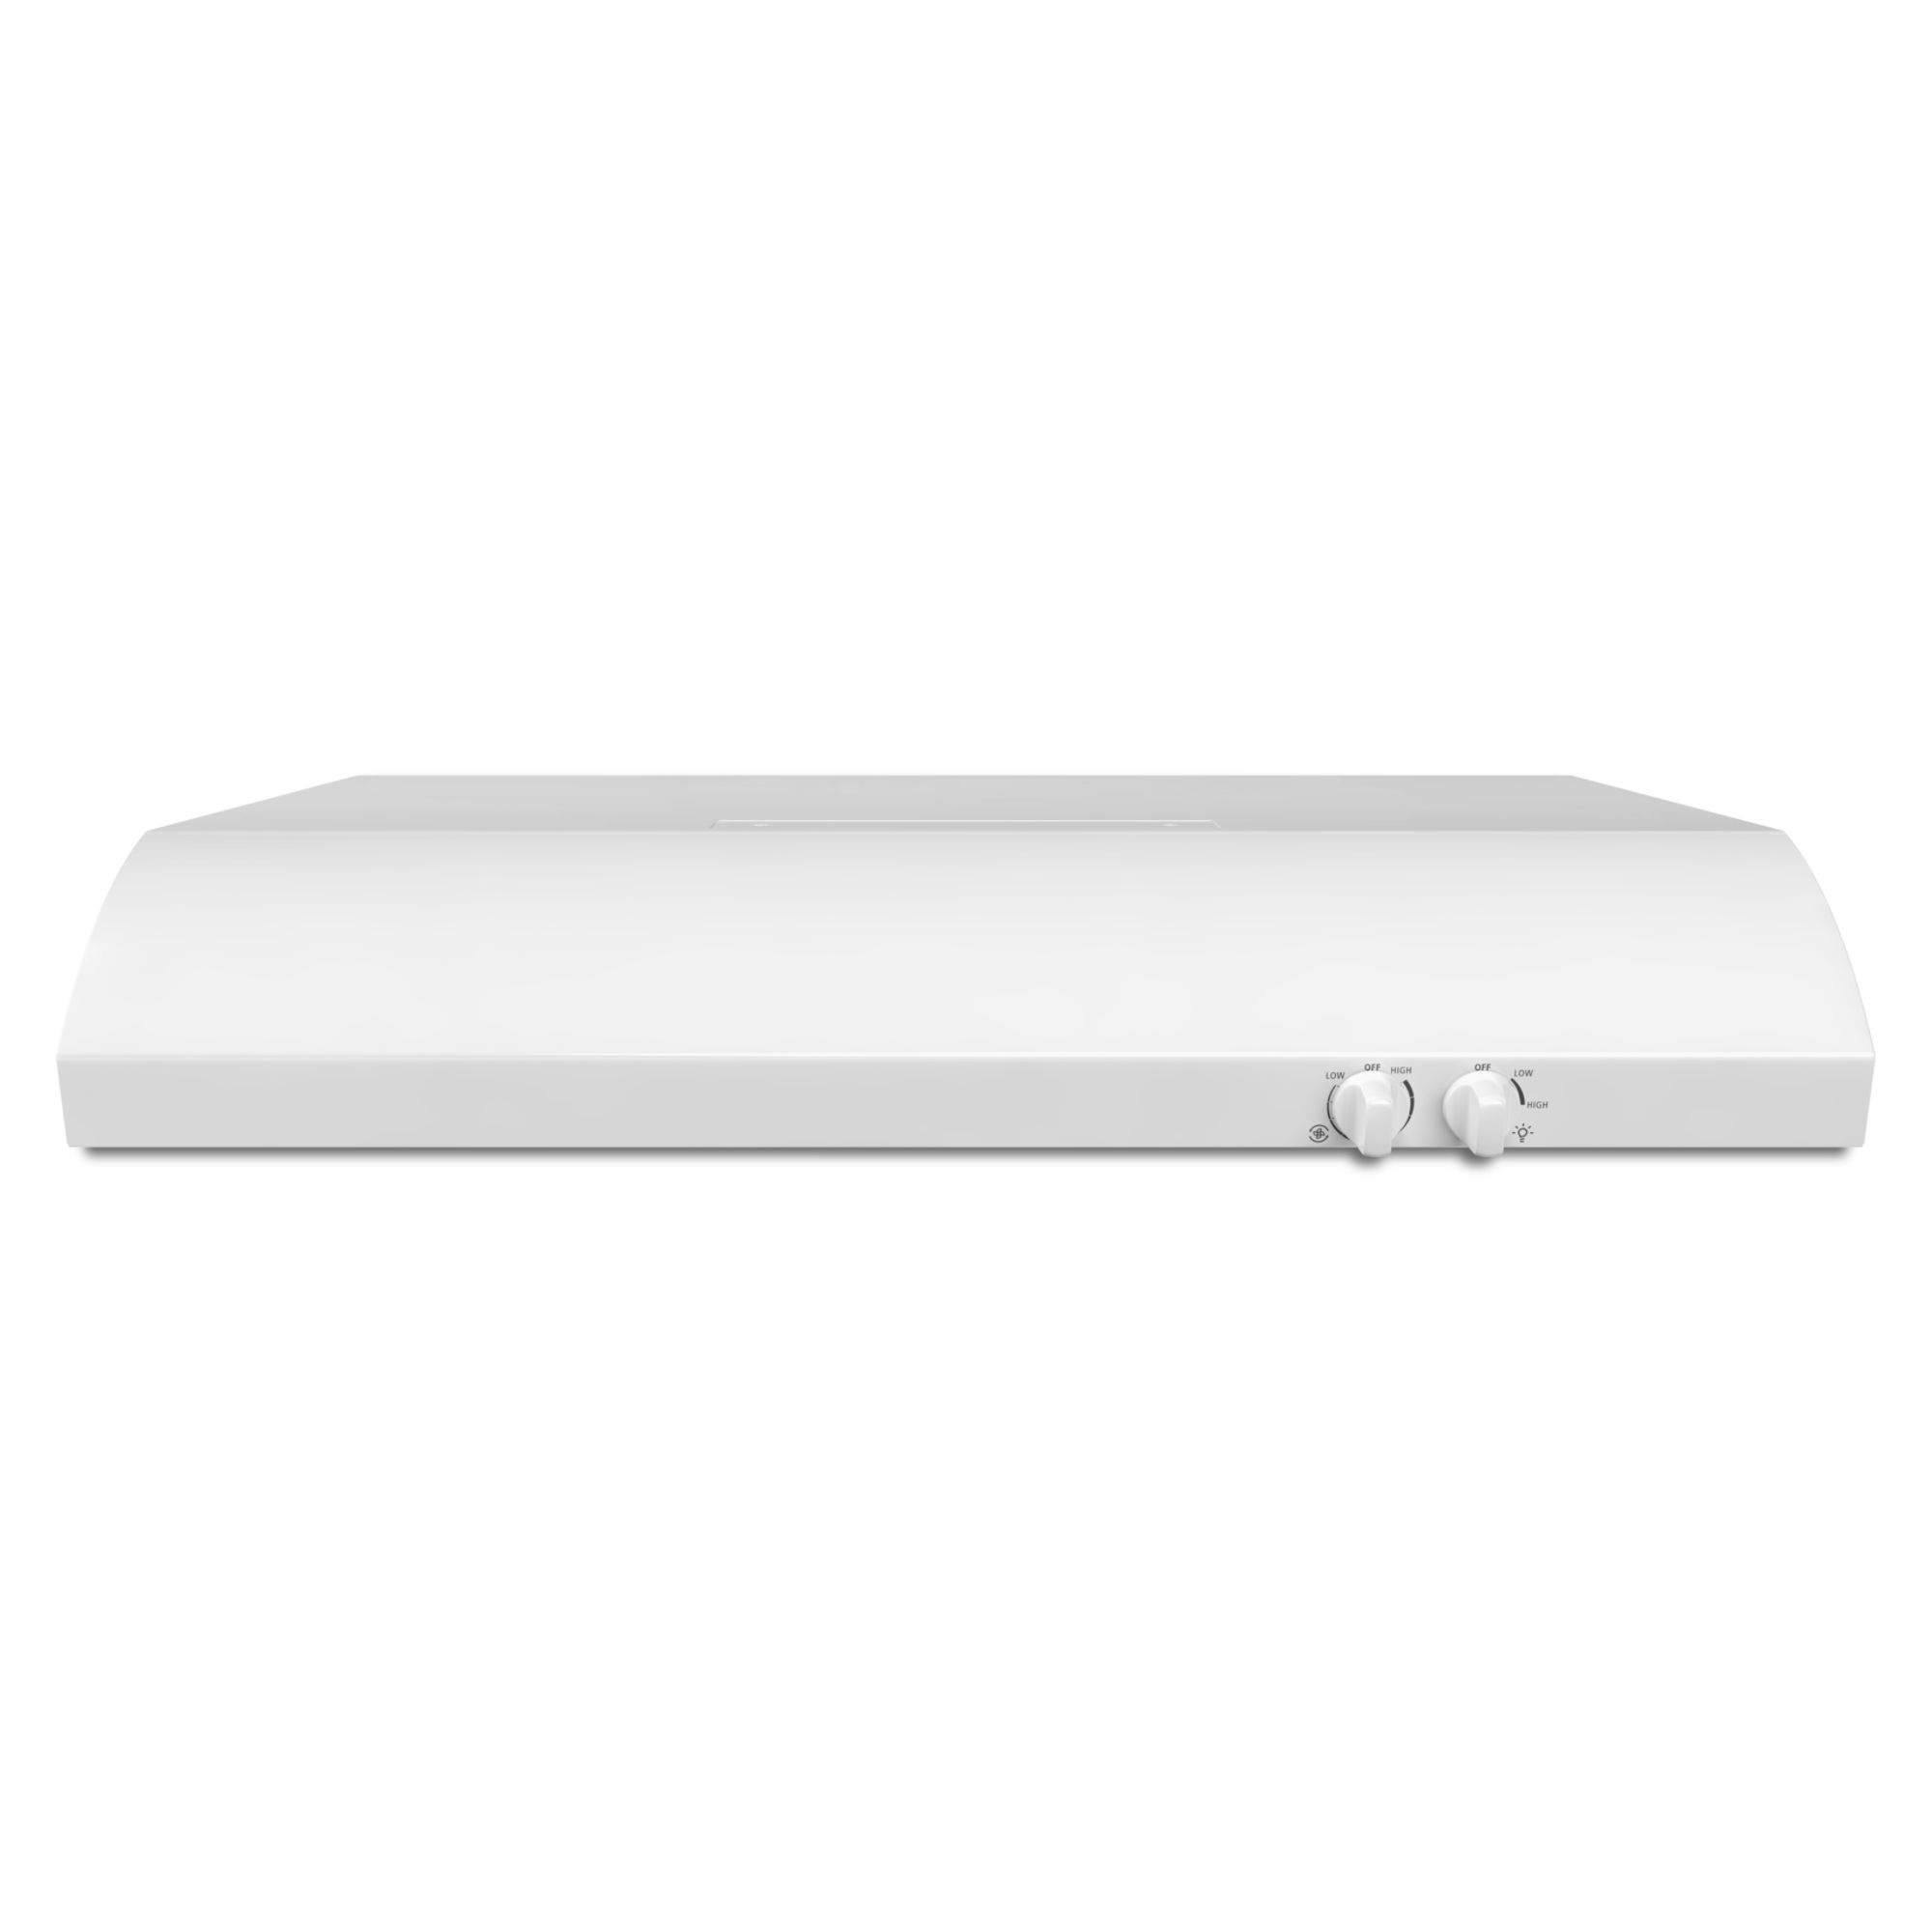 Whirlpool 36 Convertible Under-Cabinet Range Hood - White